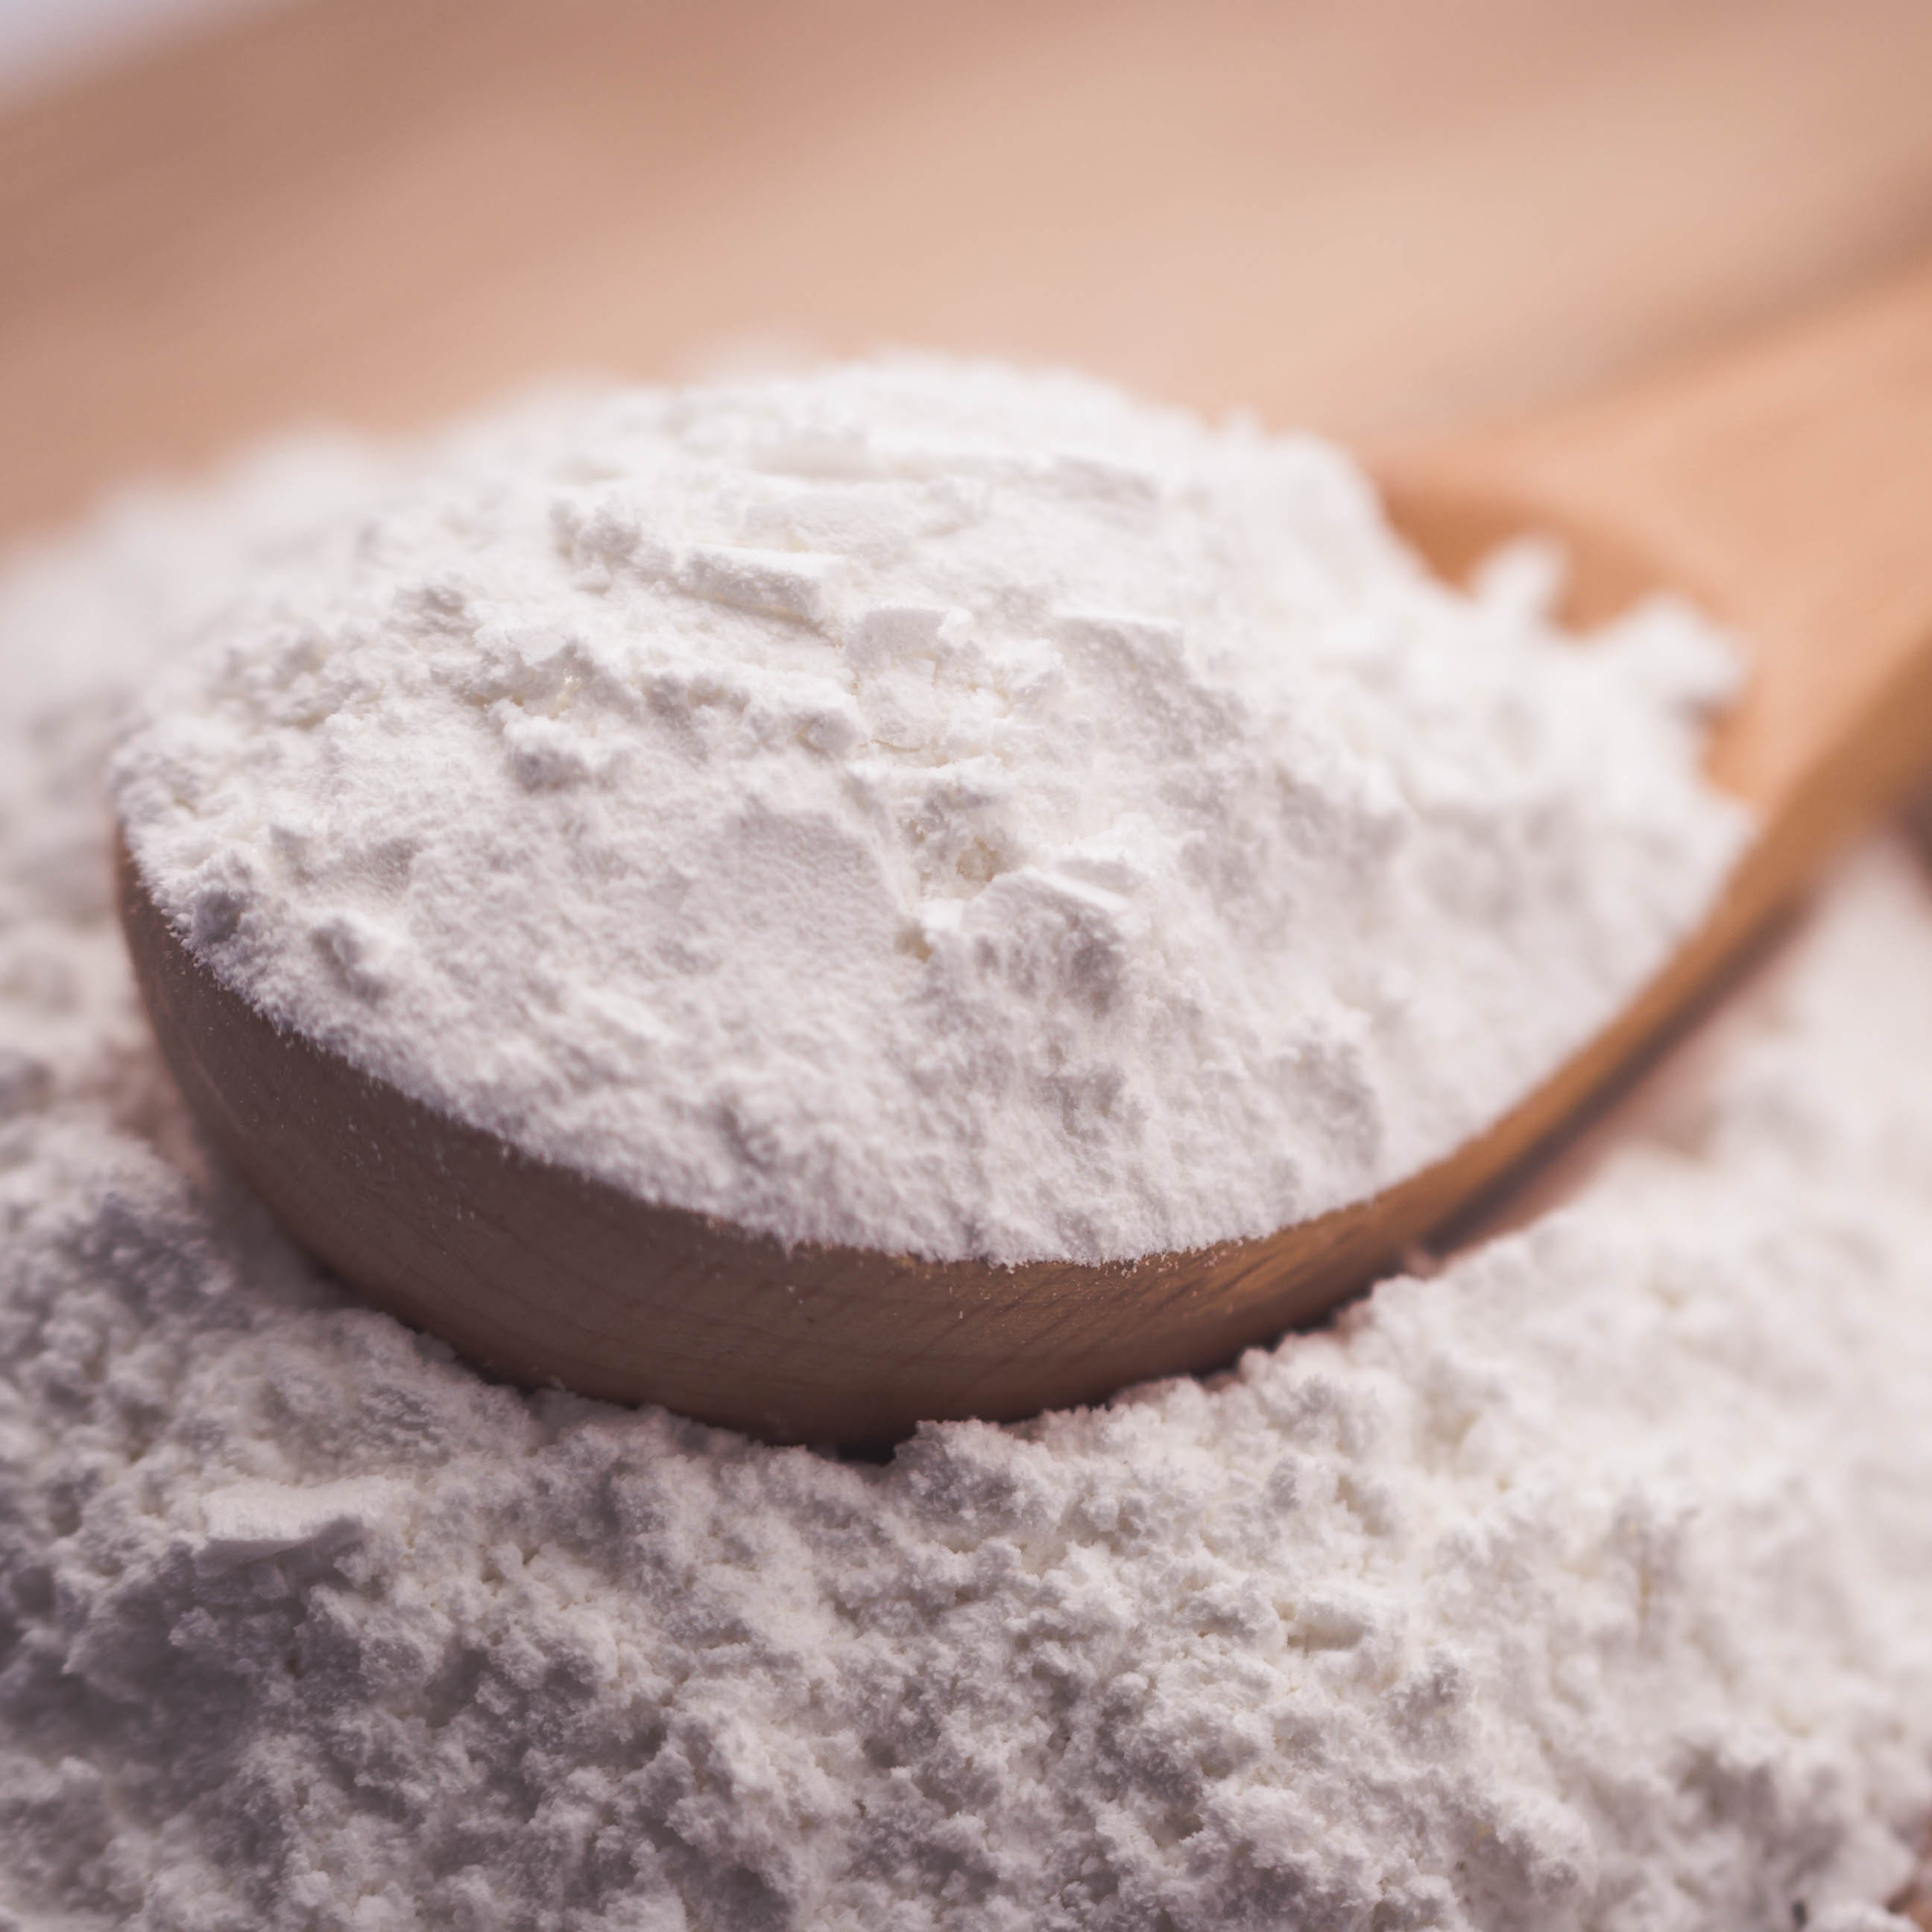 how to store flour correctly - Refined flour